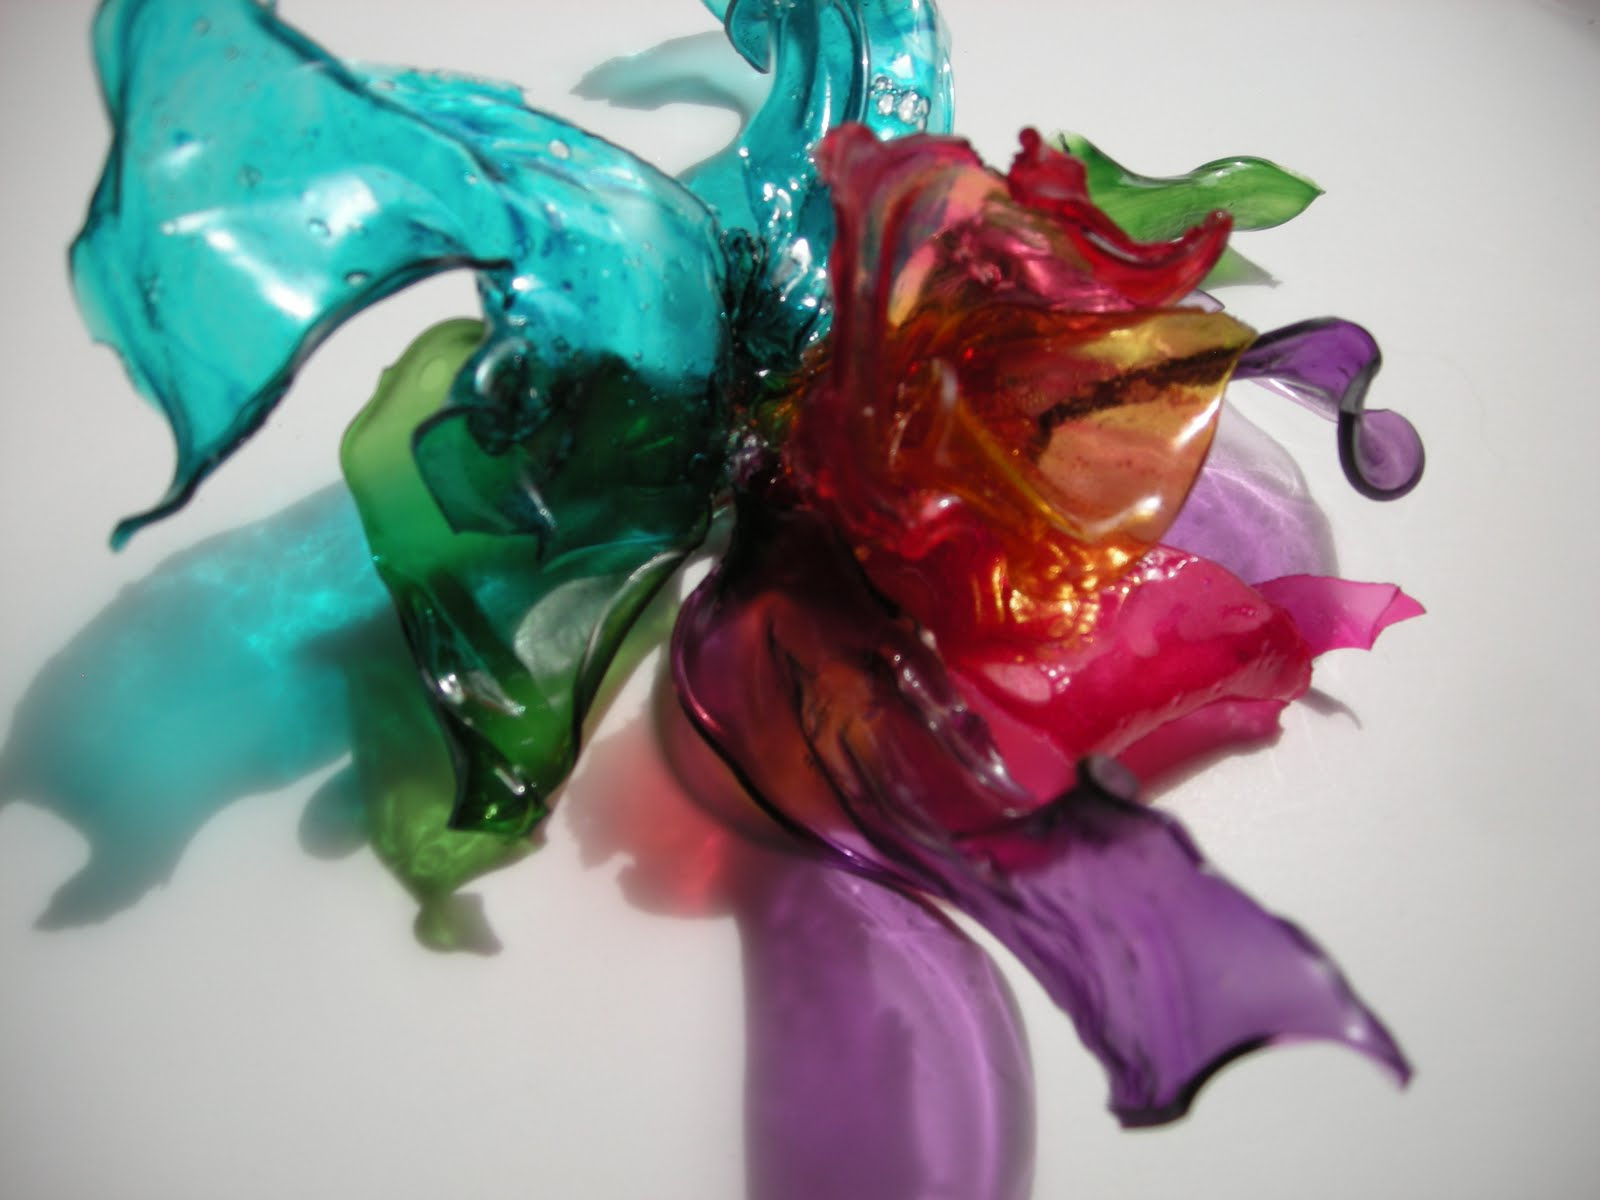 Cool Gelatin Creation